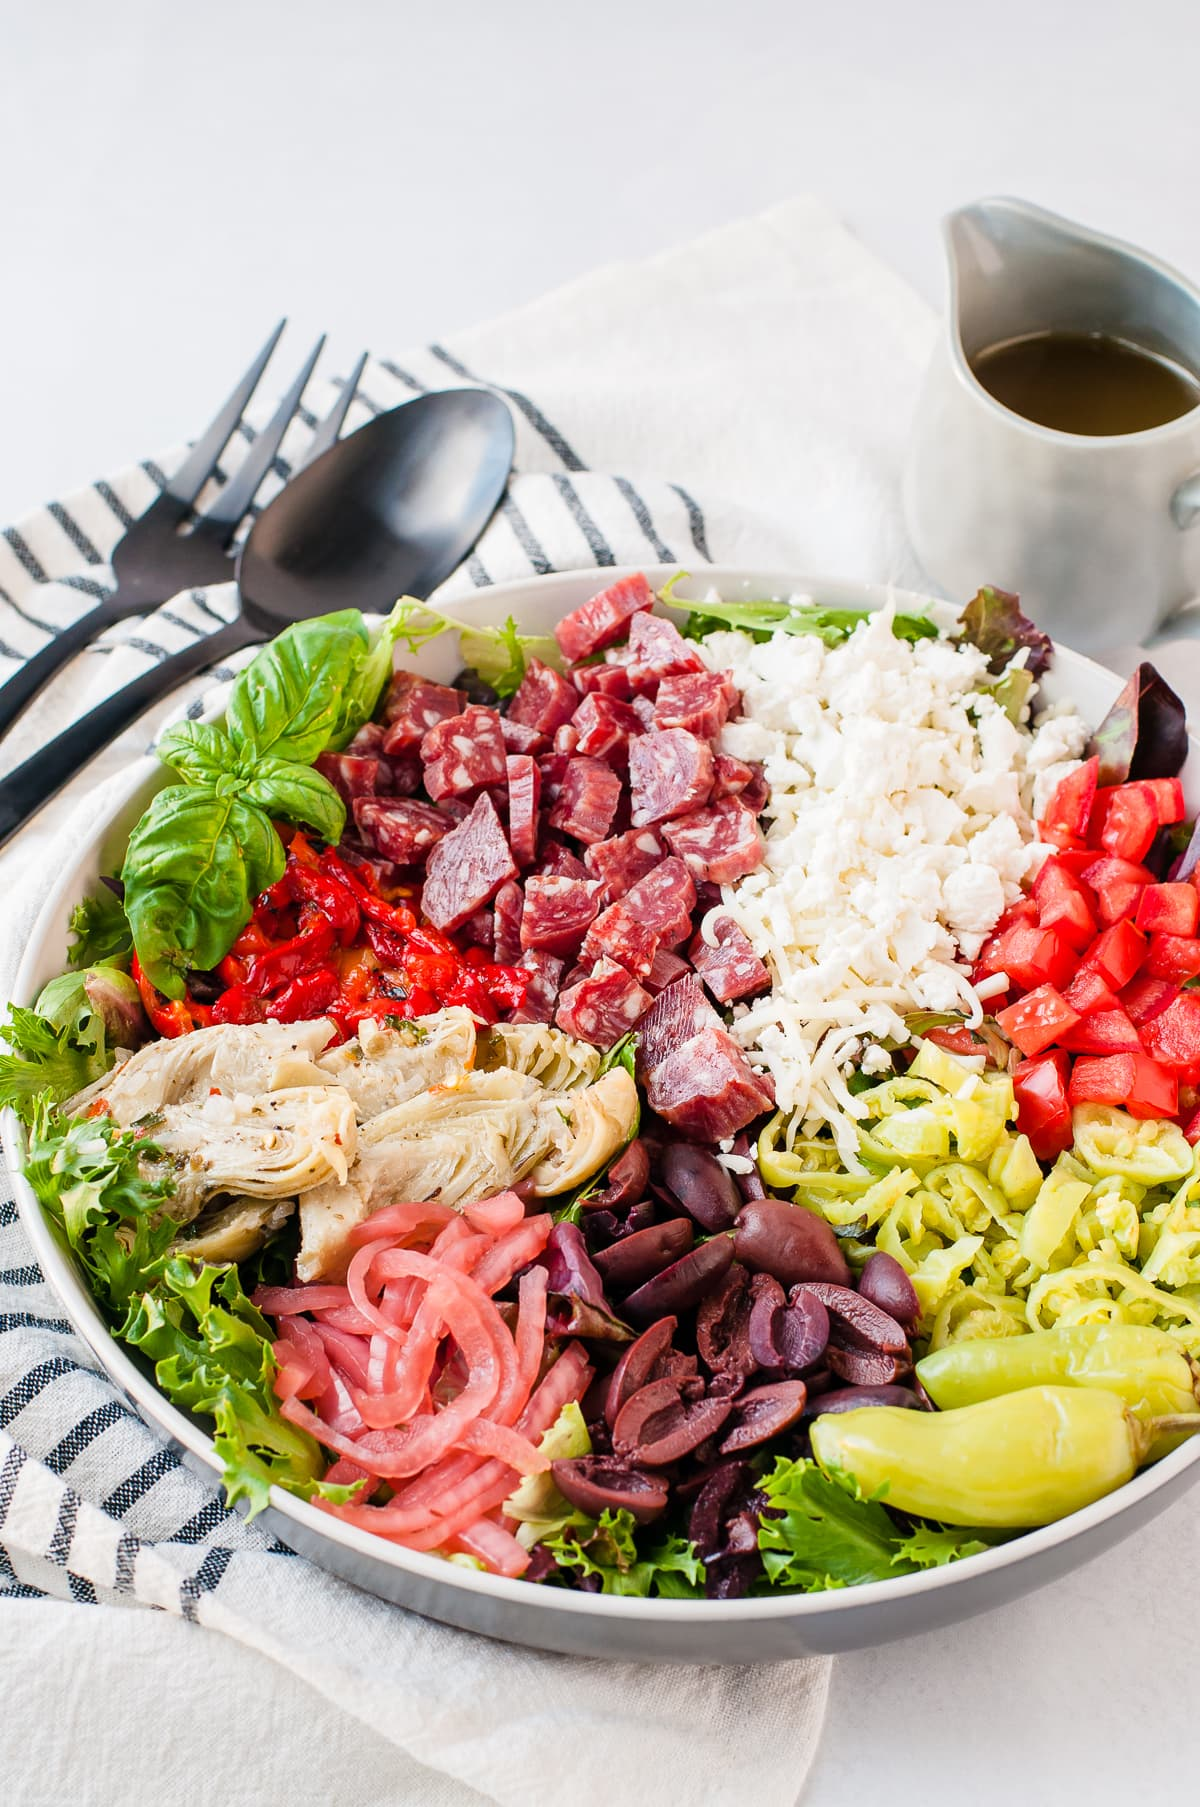 Overhead shot of a brightly colored antipasto salad - topped with meats, cheese, and vegetables